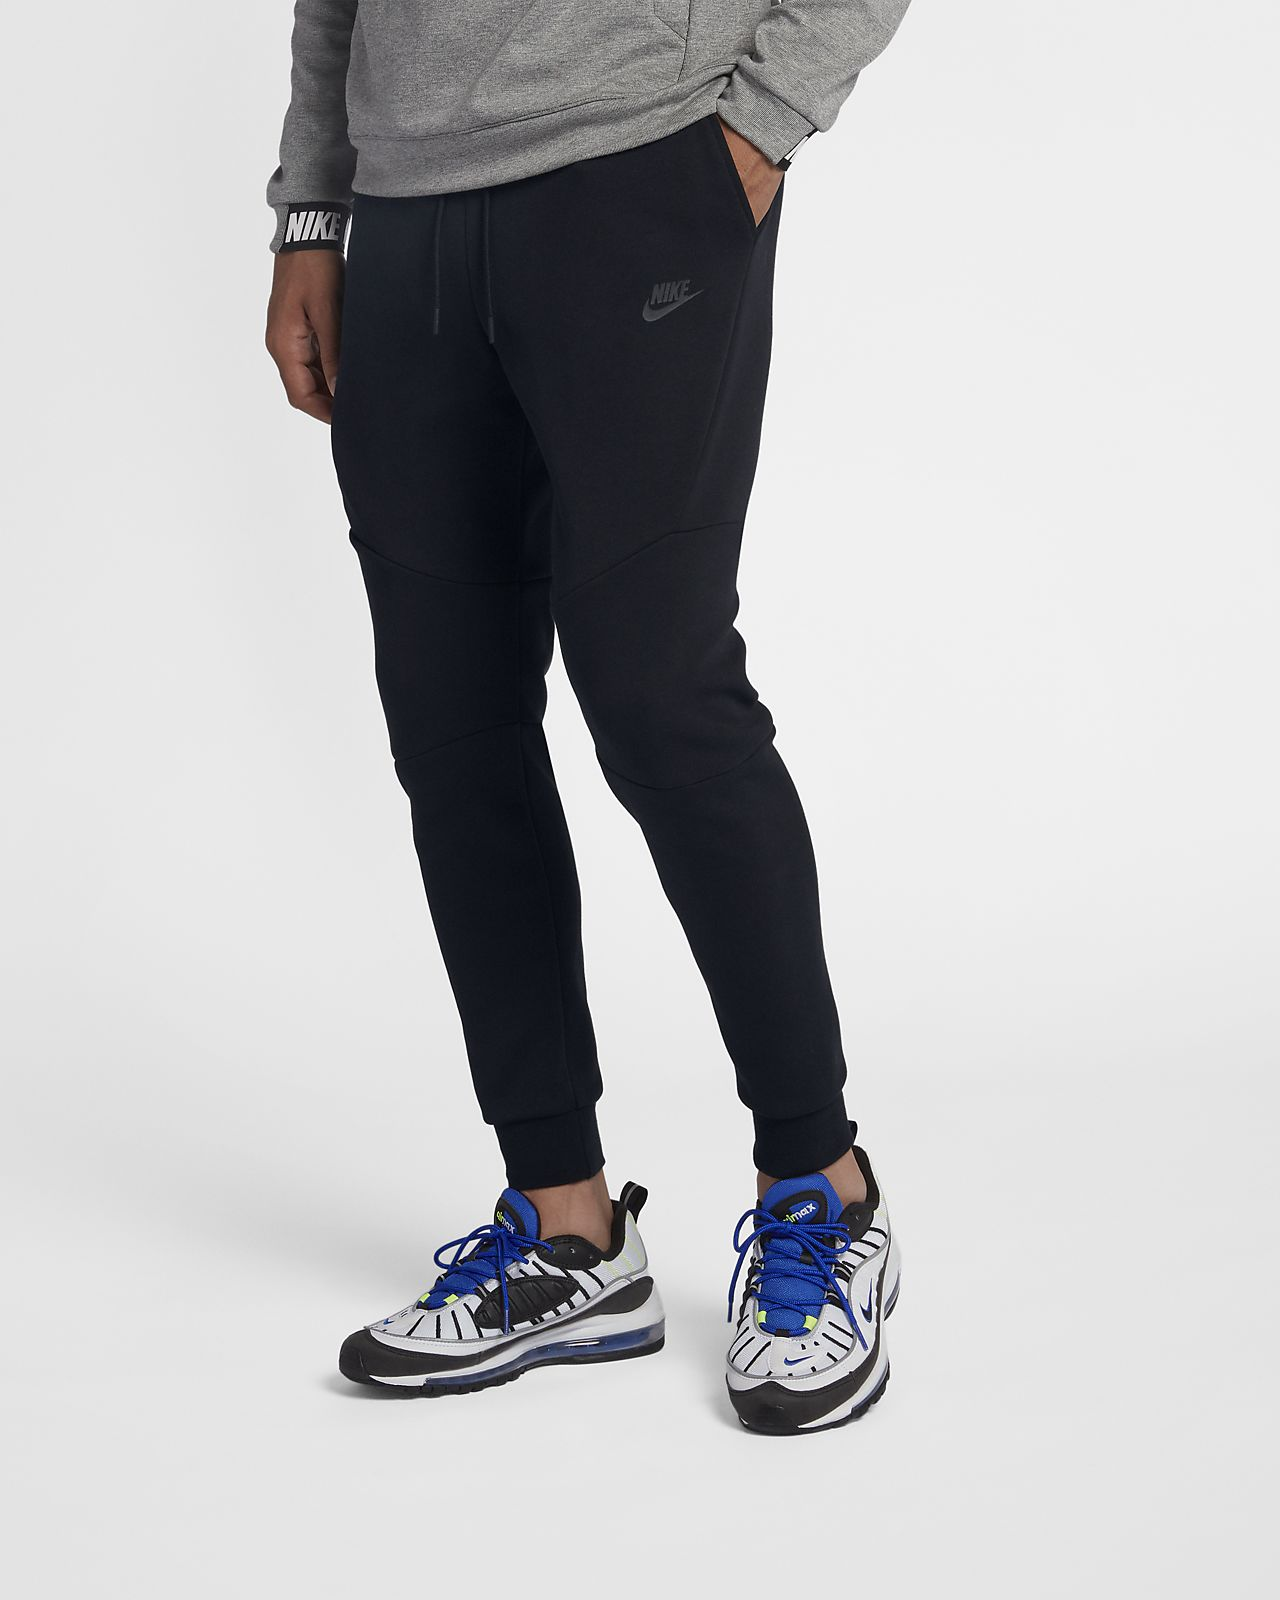 Nike Sportswear Tech Fleece Men's Joggers. Nike SG